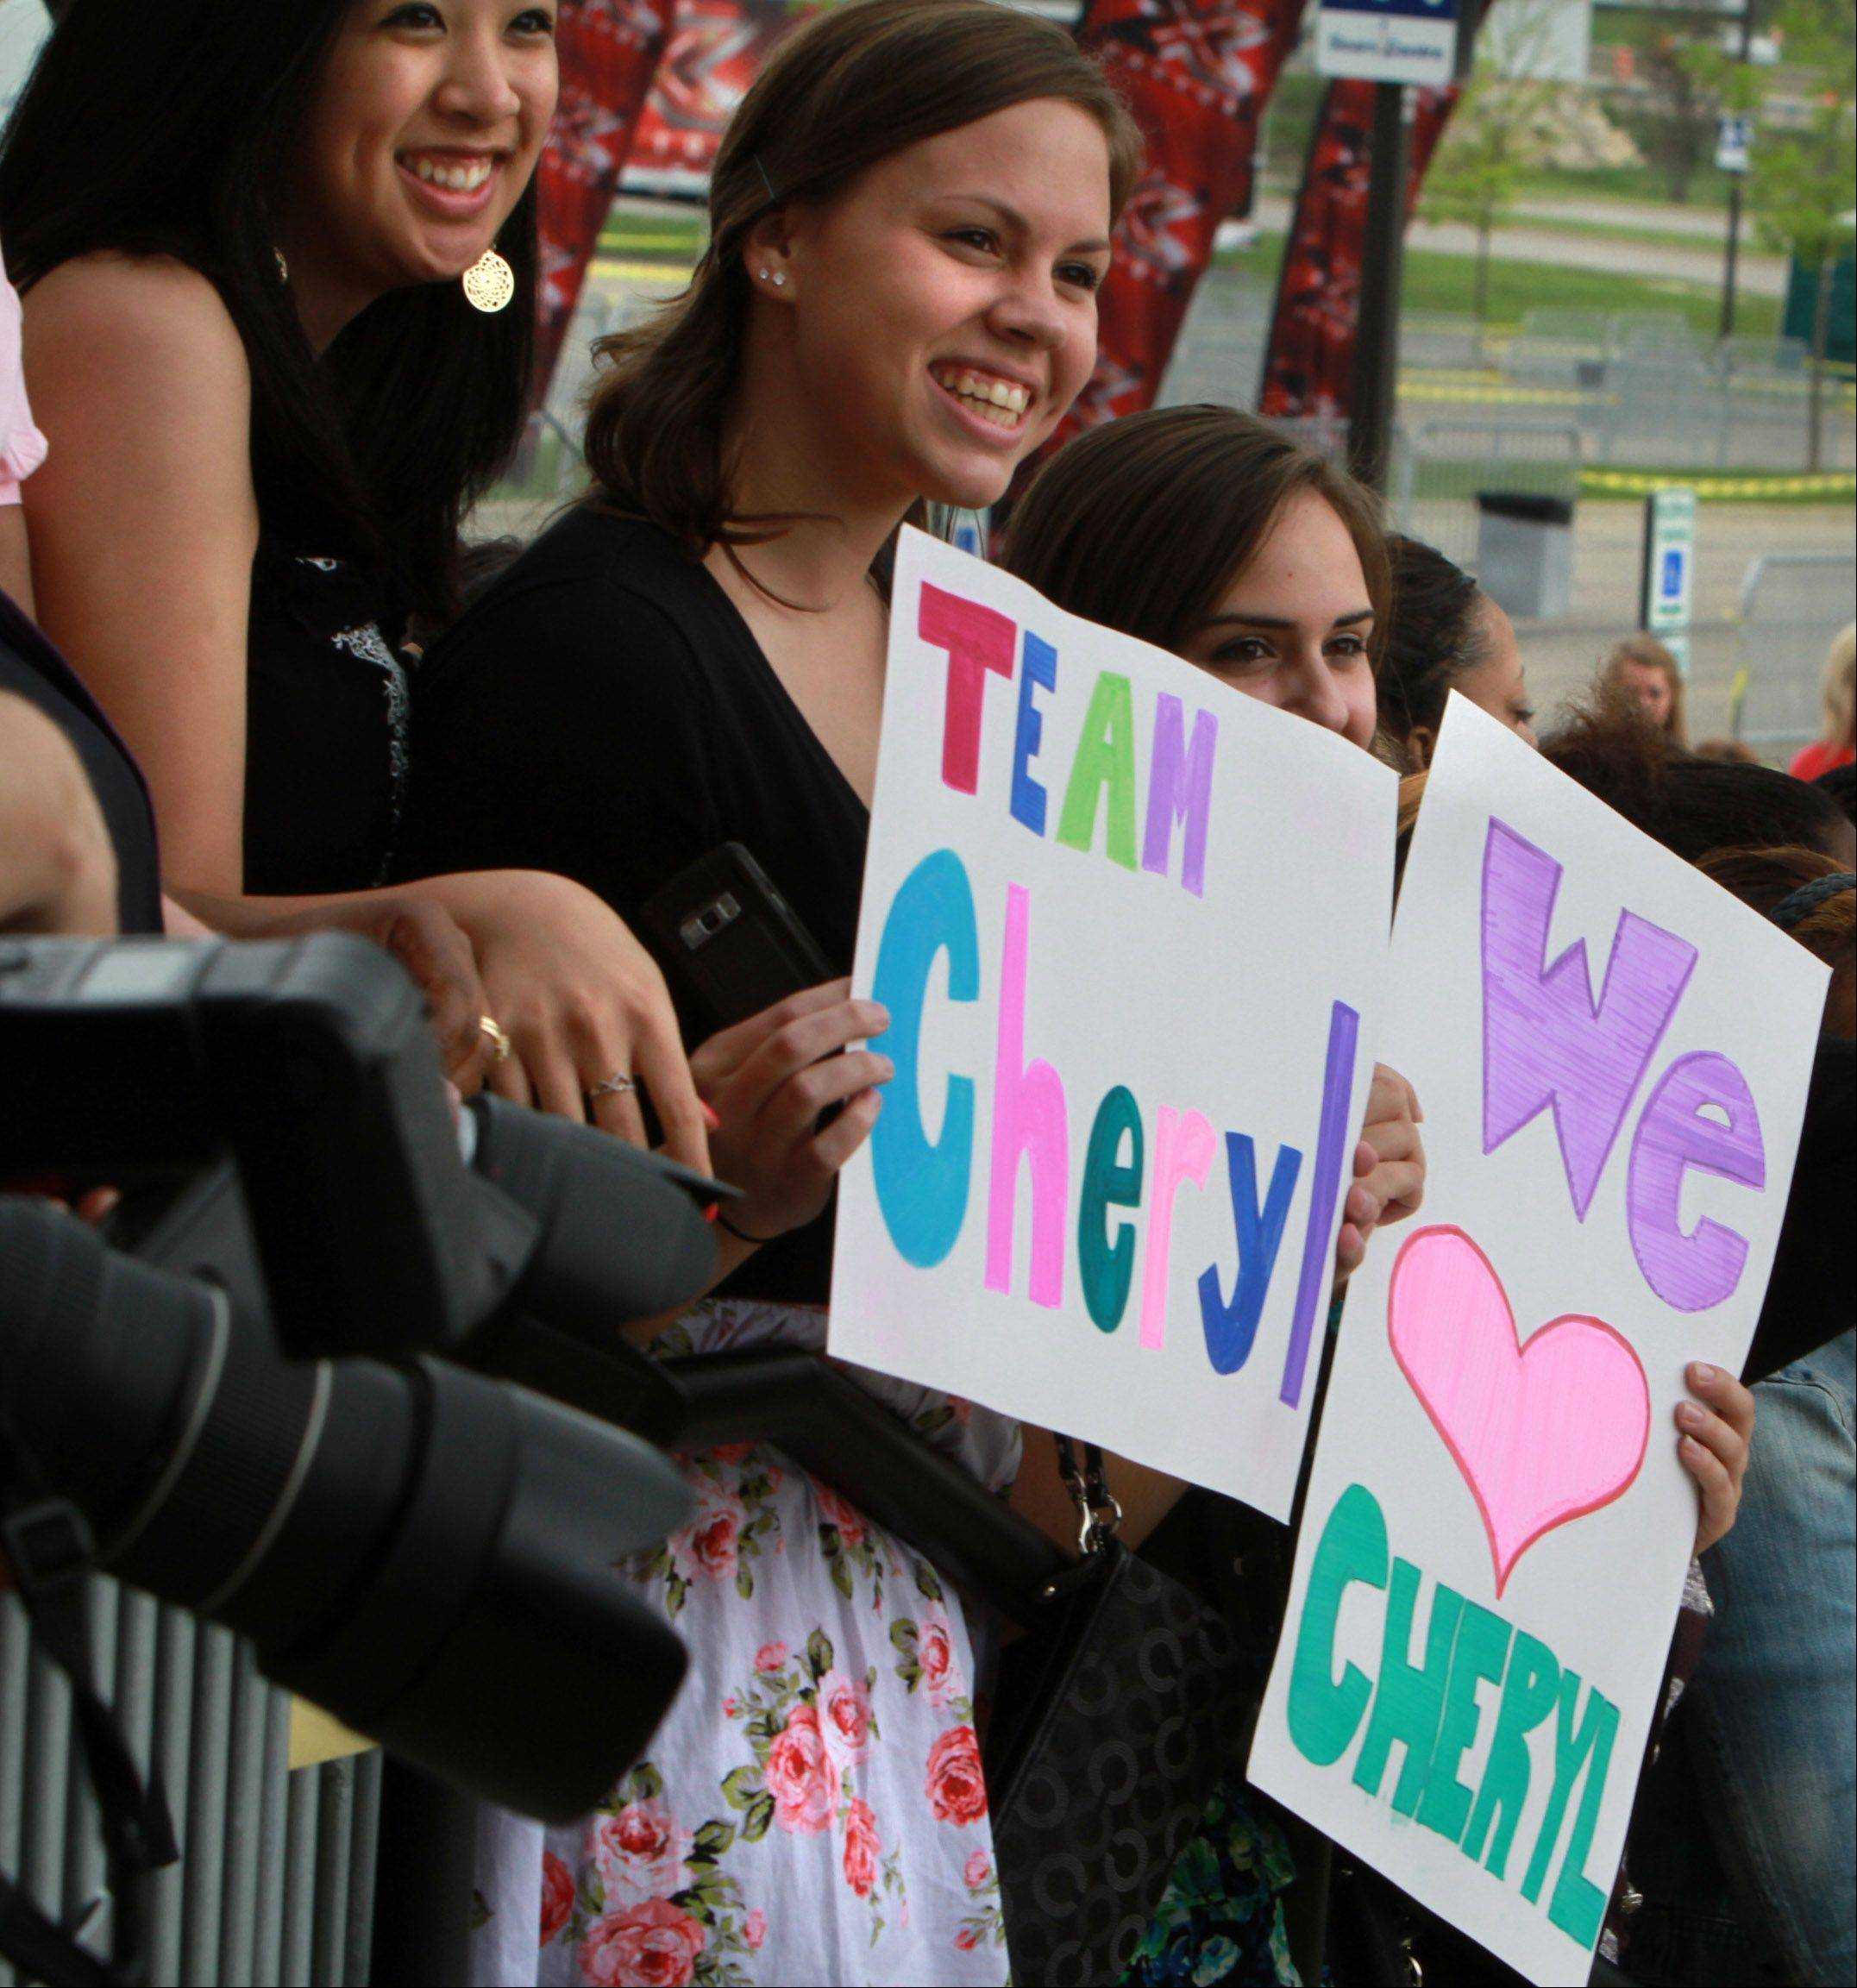 Cheryl Cole fans hold signs before the taping of The X Factor at the Sears Centre in Hoffman Estates on Thursday, May 19th.